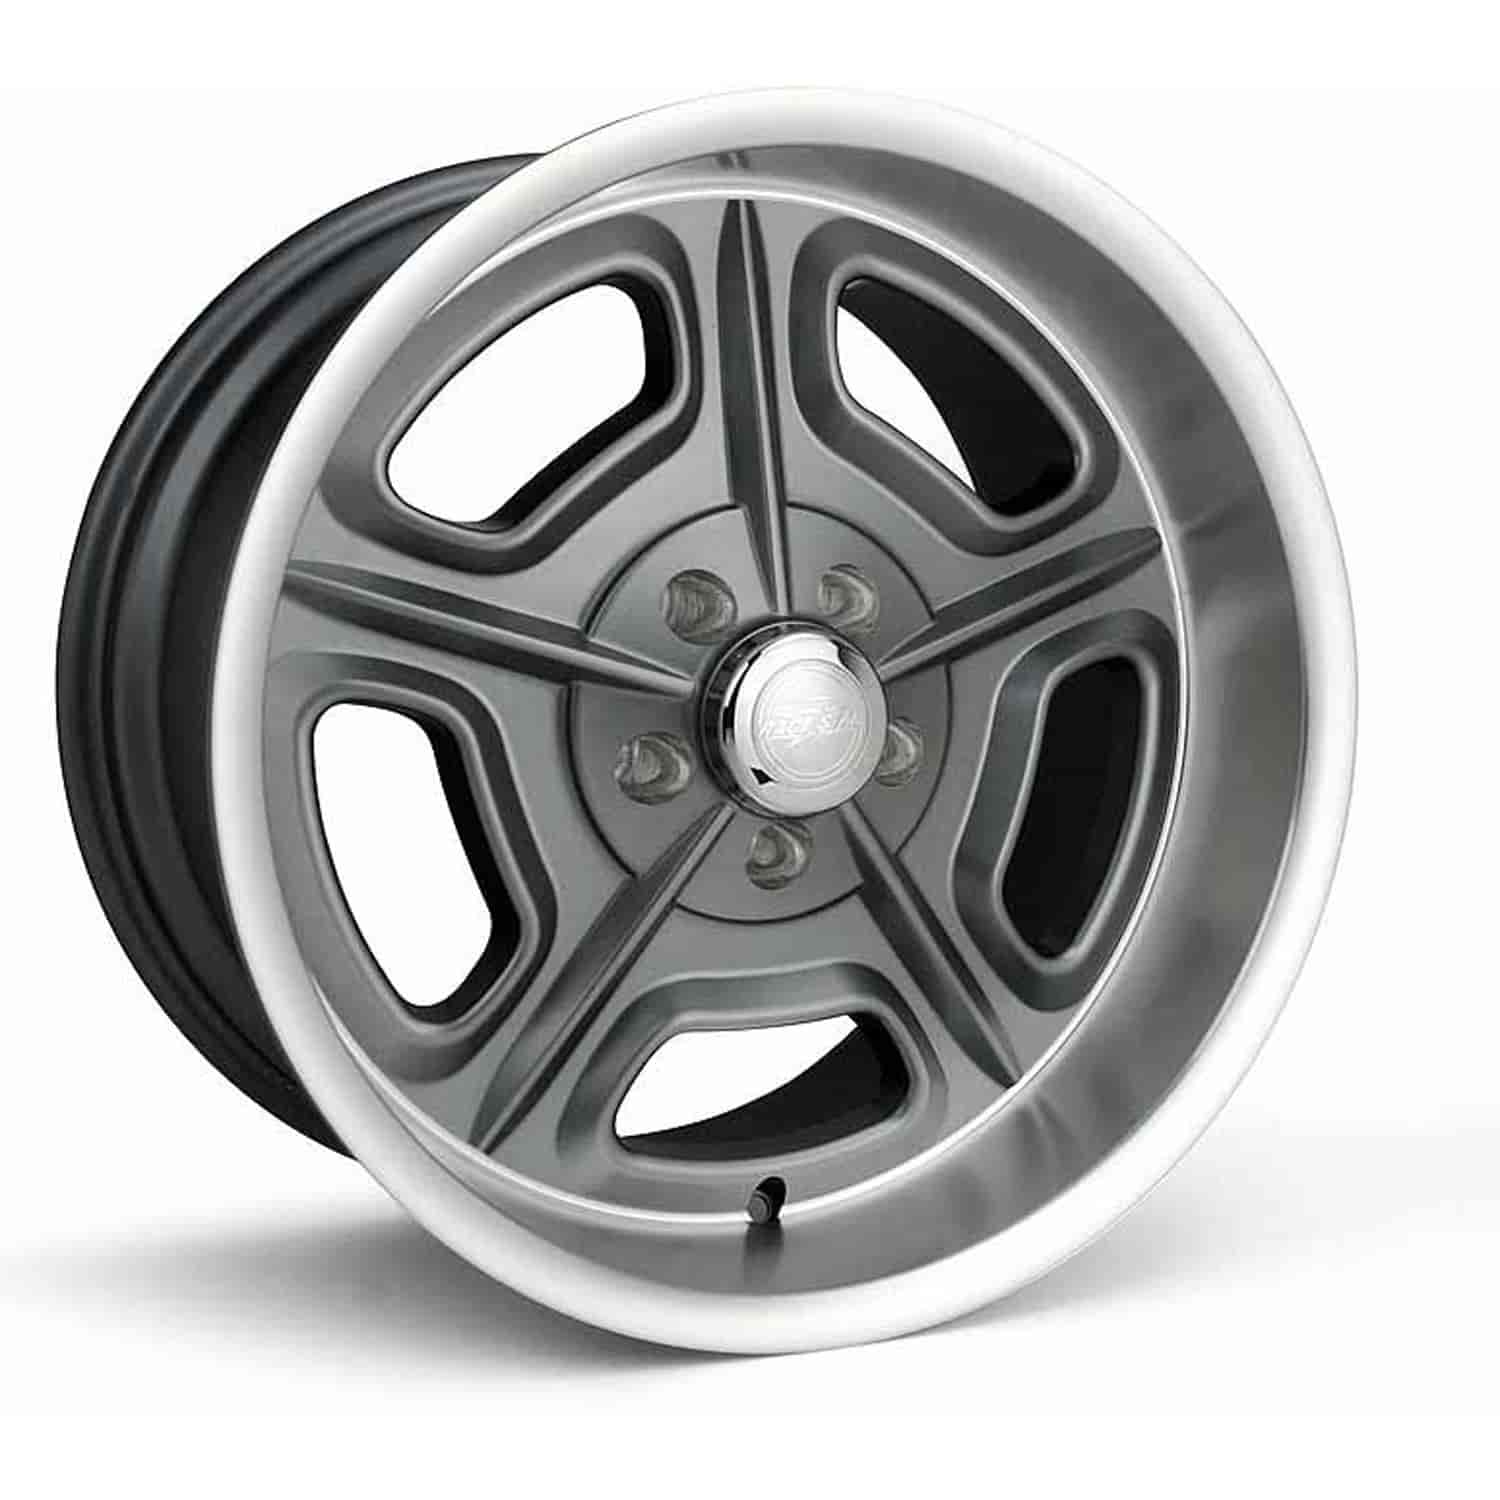 Race Star Wheels 32-510249GP